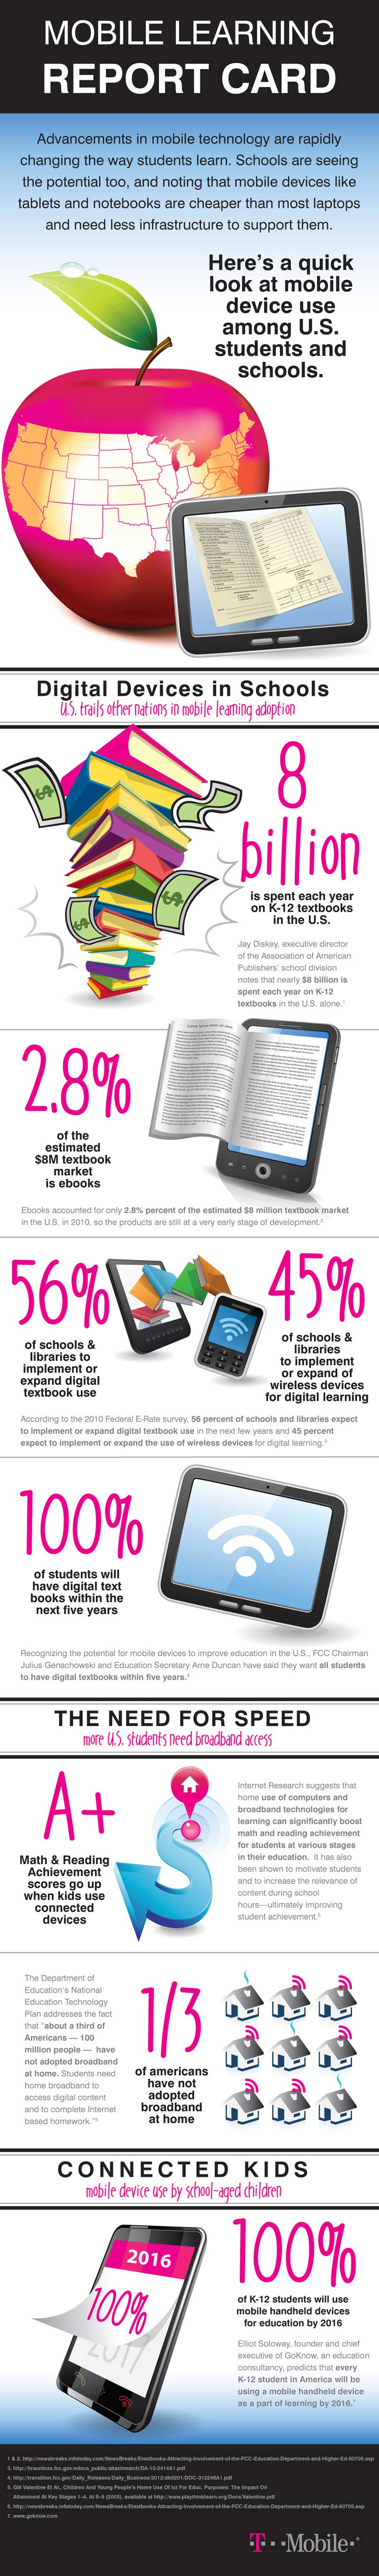 Schools Embrace Power and Potential of Mobile Technologies [Infographic]